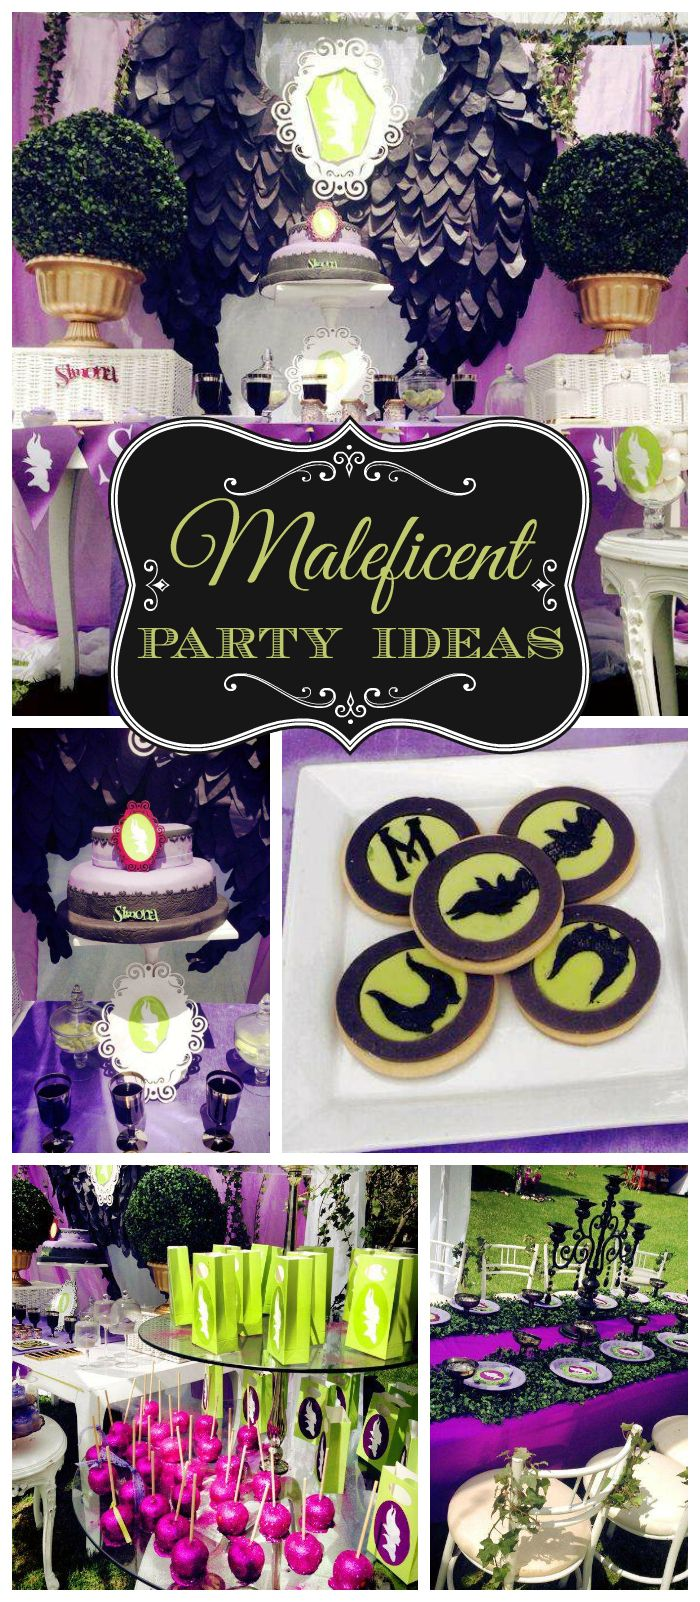 25 best Maleficent images on Pinterest